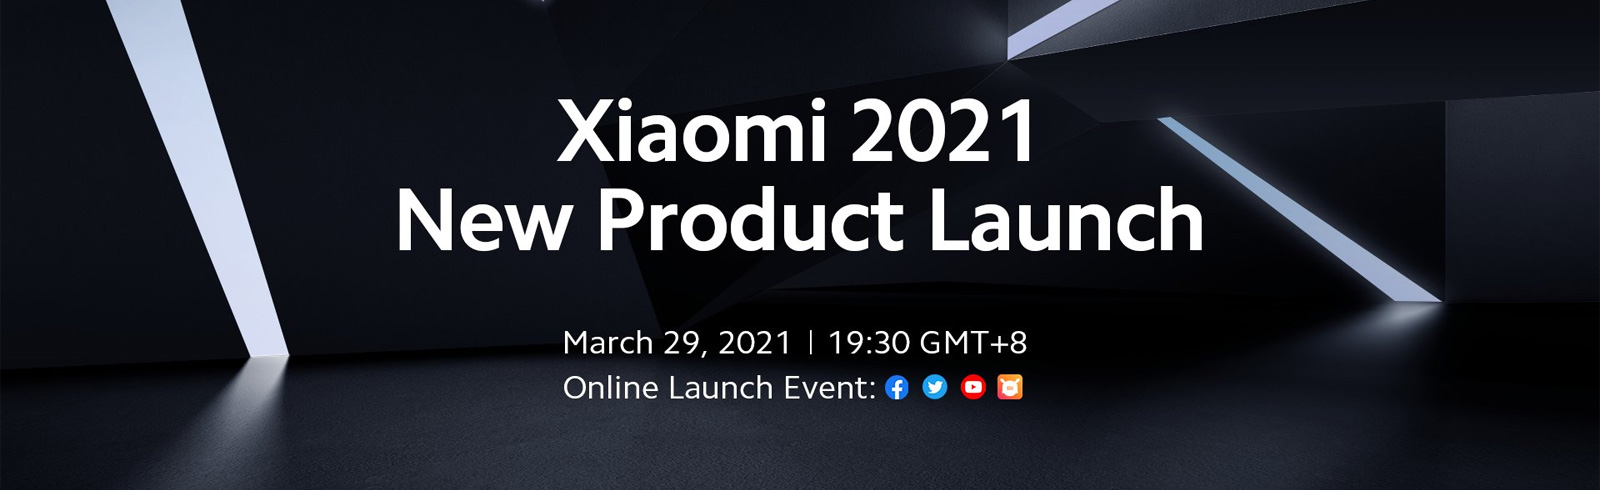 Xiaomi's 2021 New Product Launch is scheduled for March 29